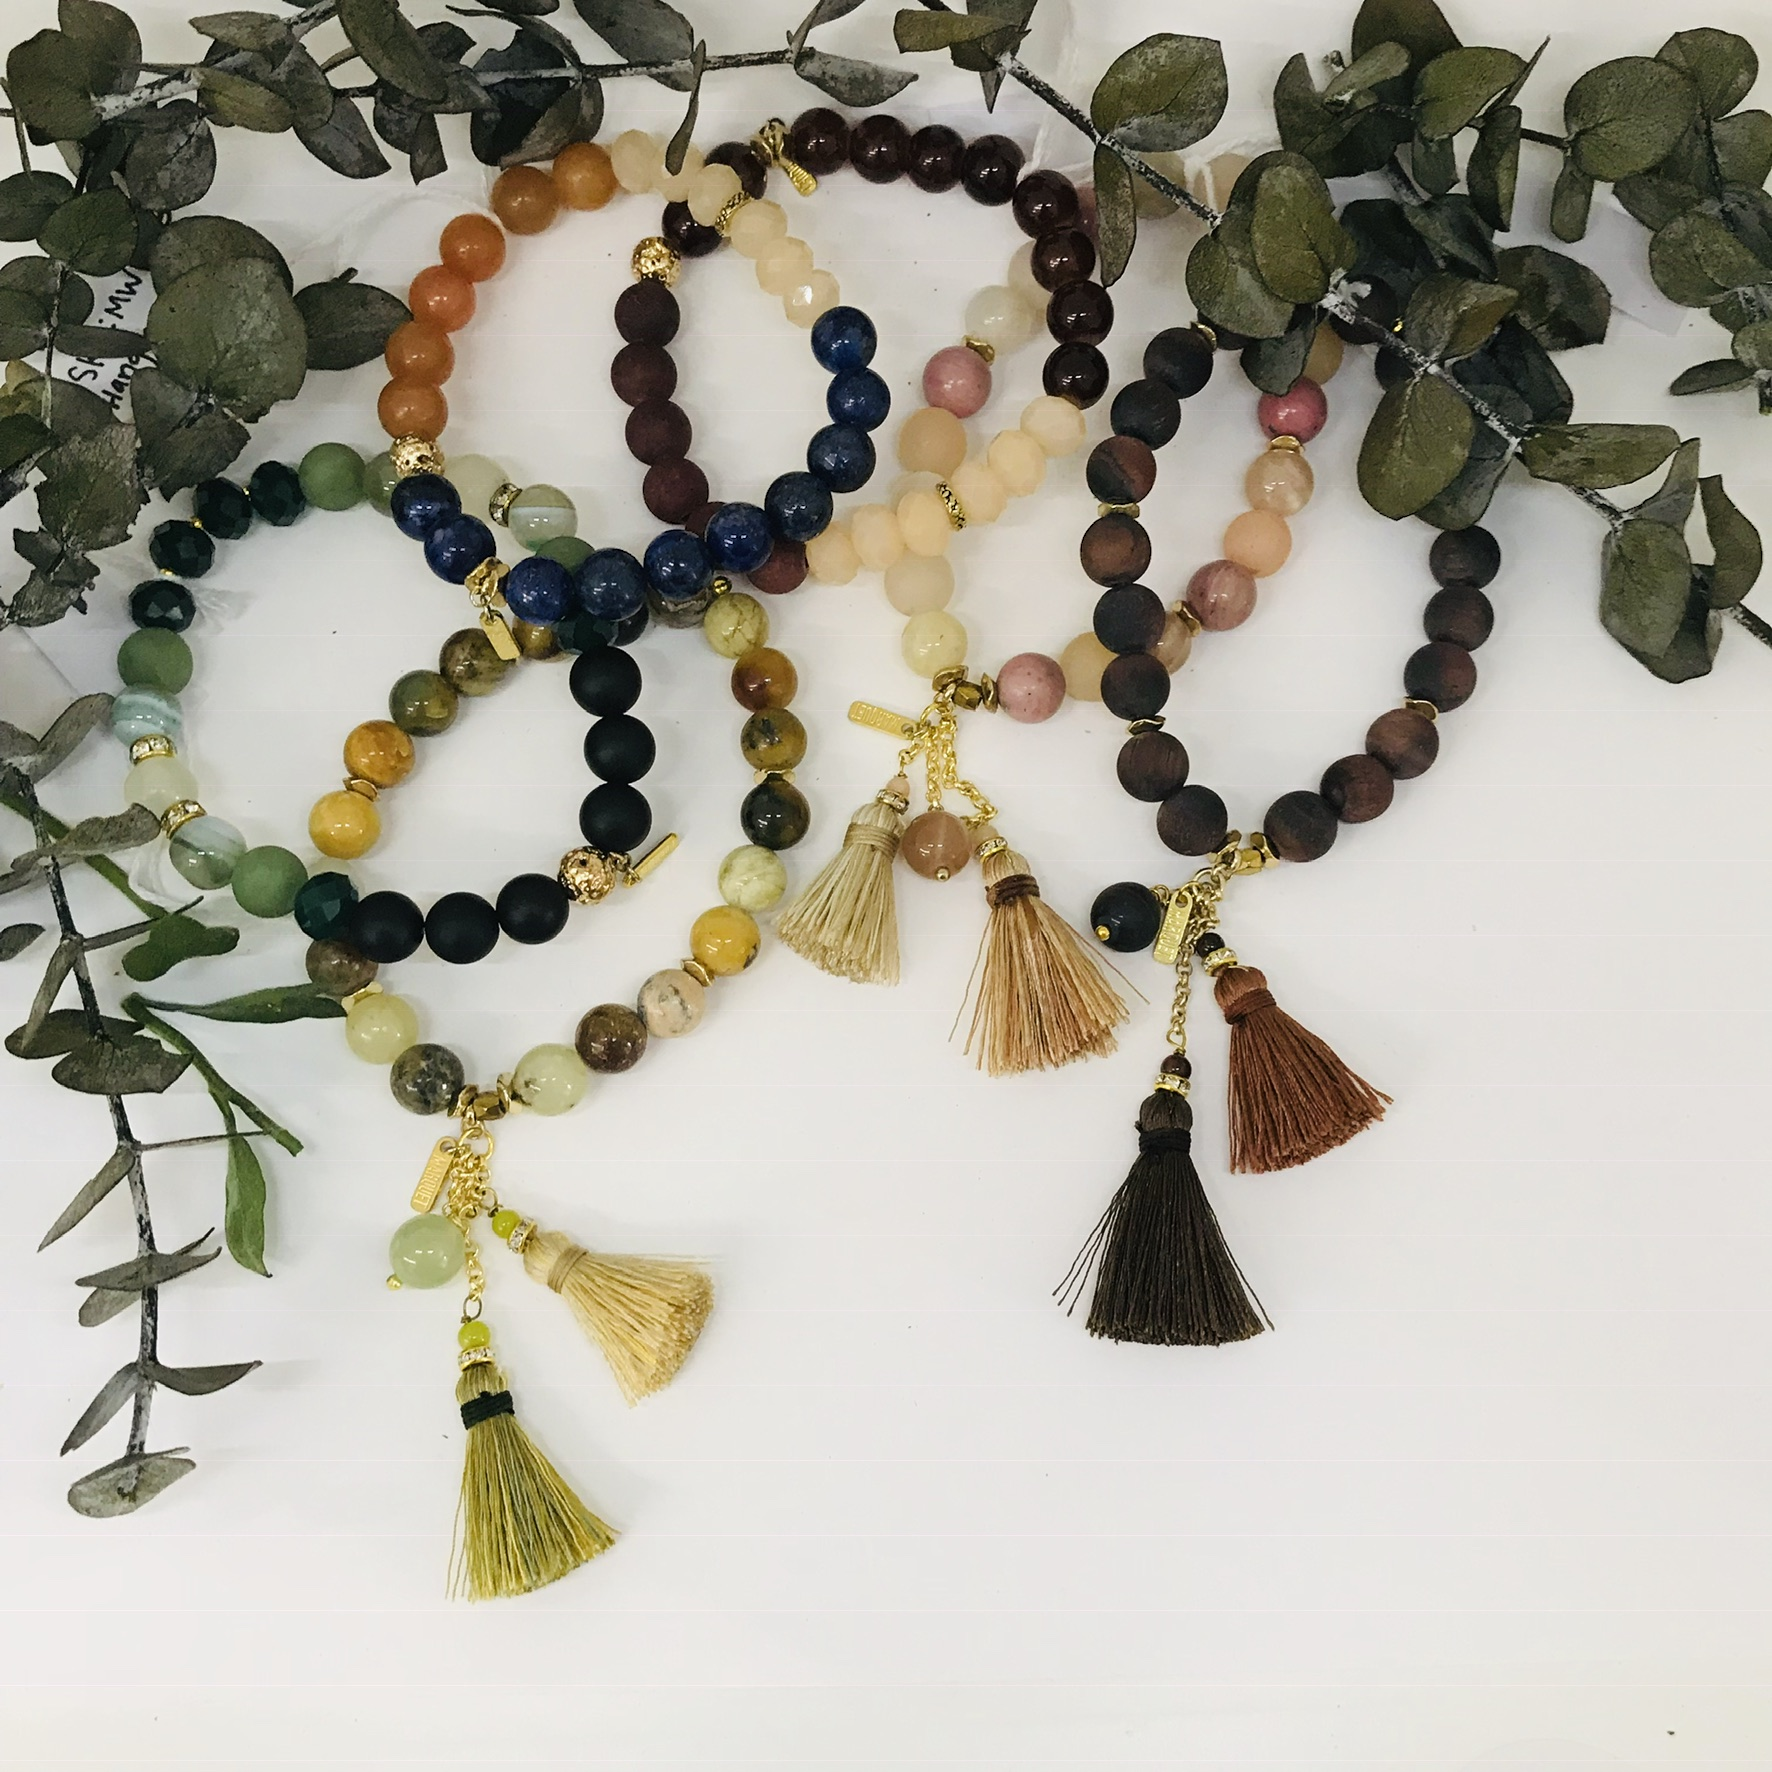 Accessorize in Style - Look Good Feel Goodwith Fair Trade Jewelry